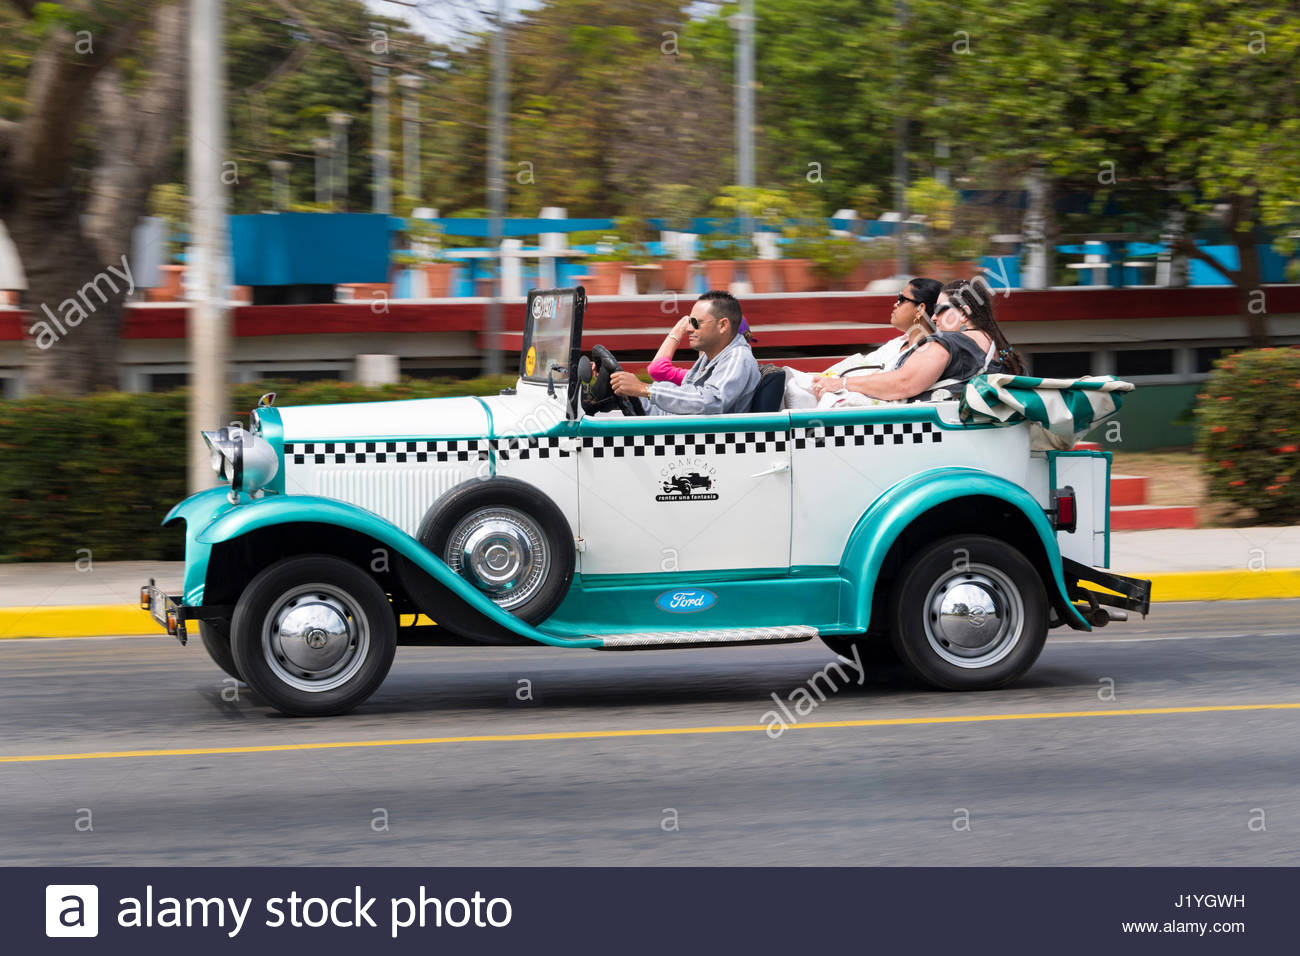 Gran Car taxi company. Old American vintage cars driving in good ...